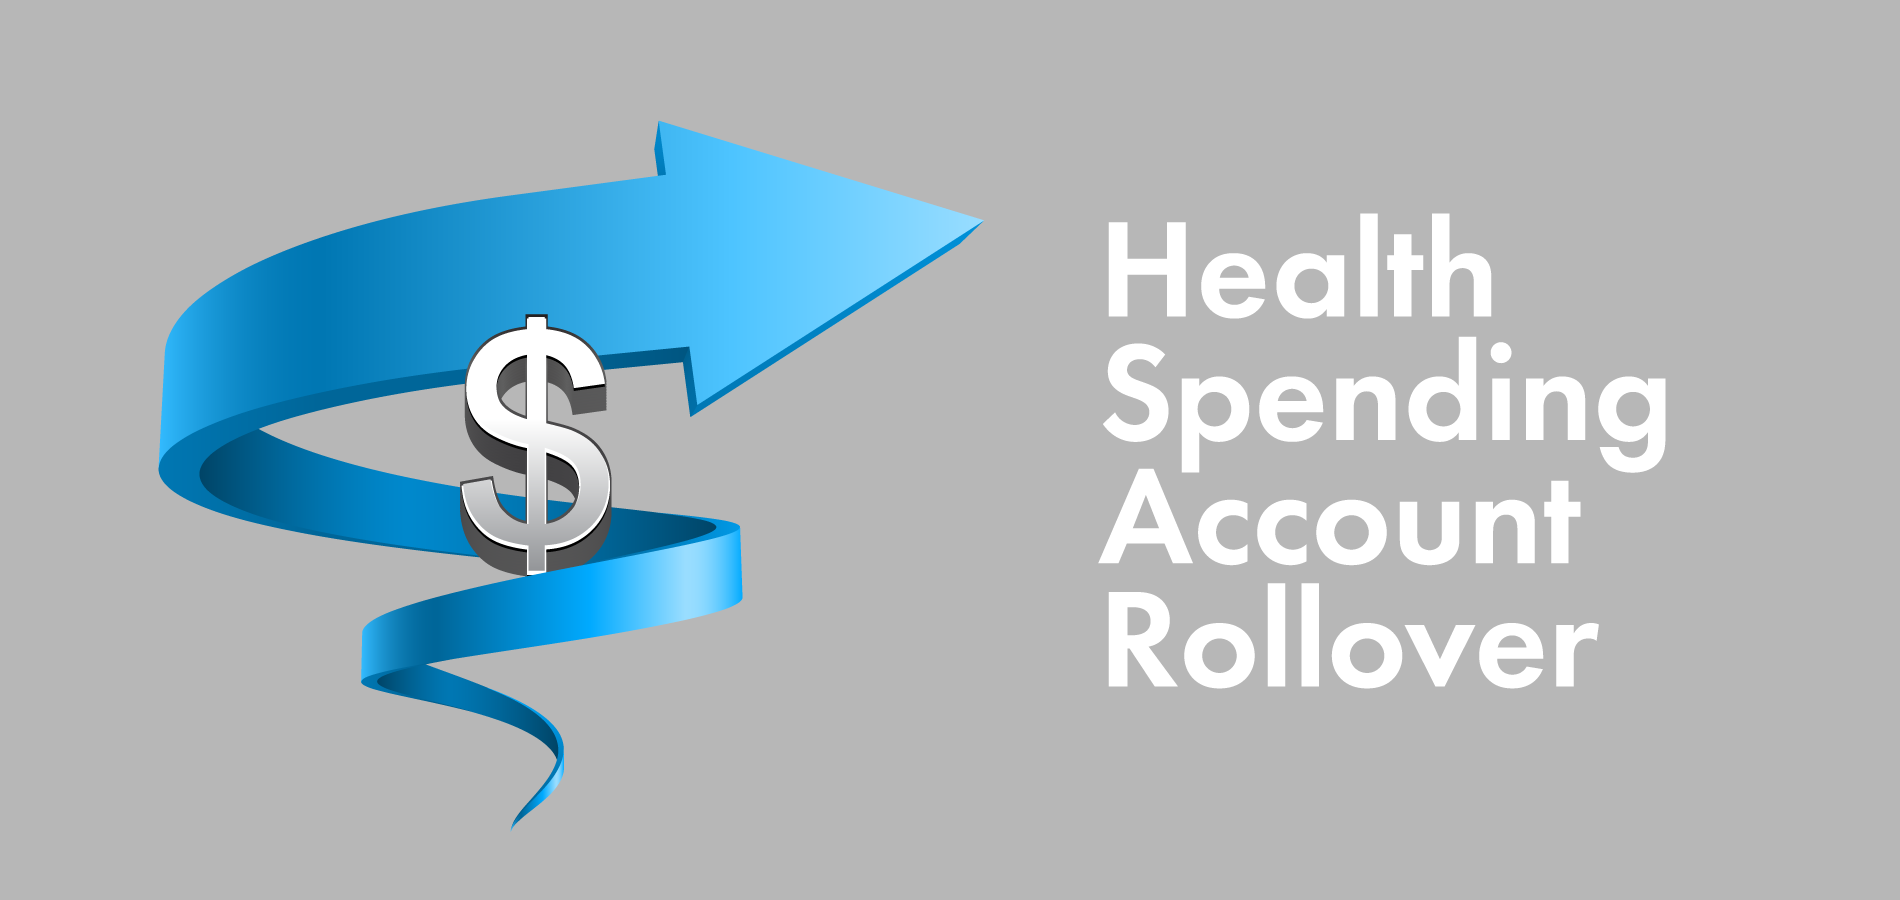 How does a Health Spending Account rollover work